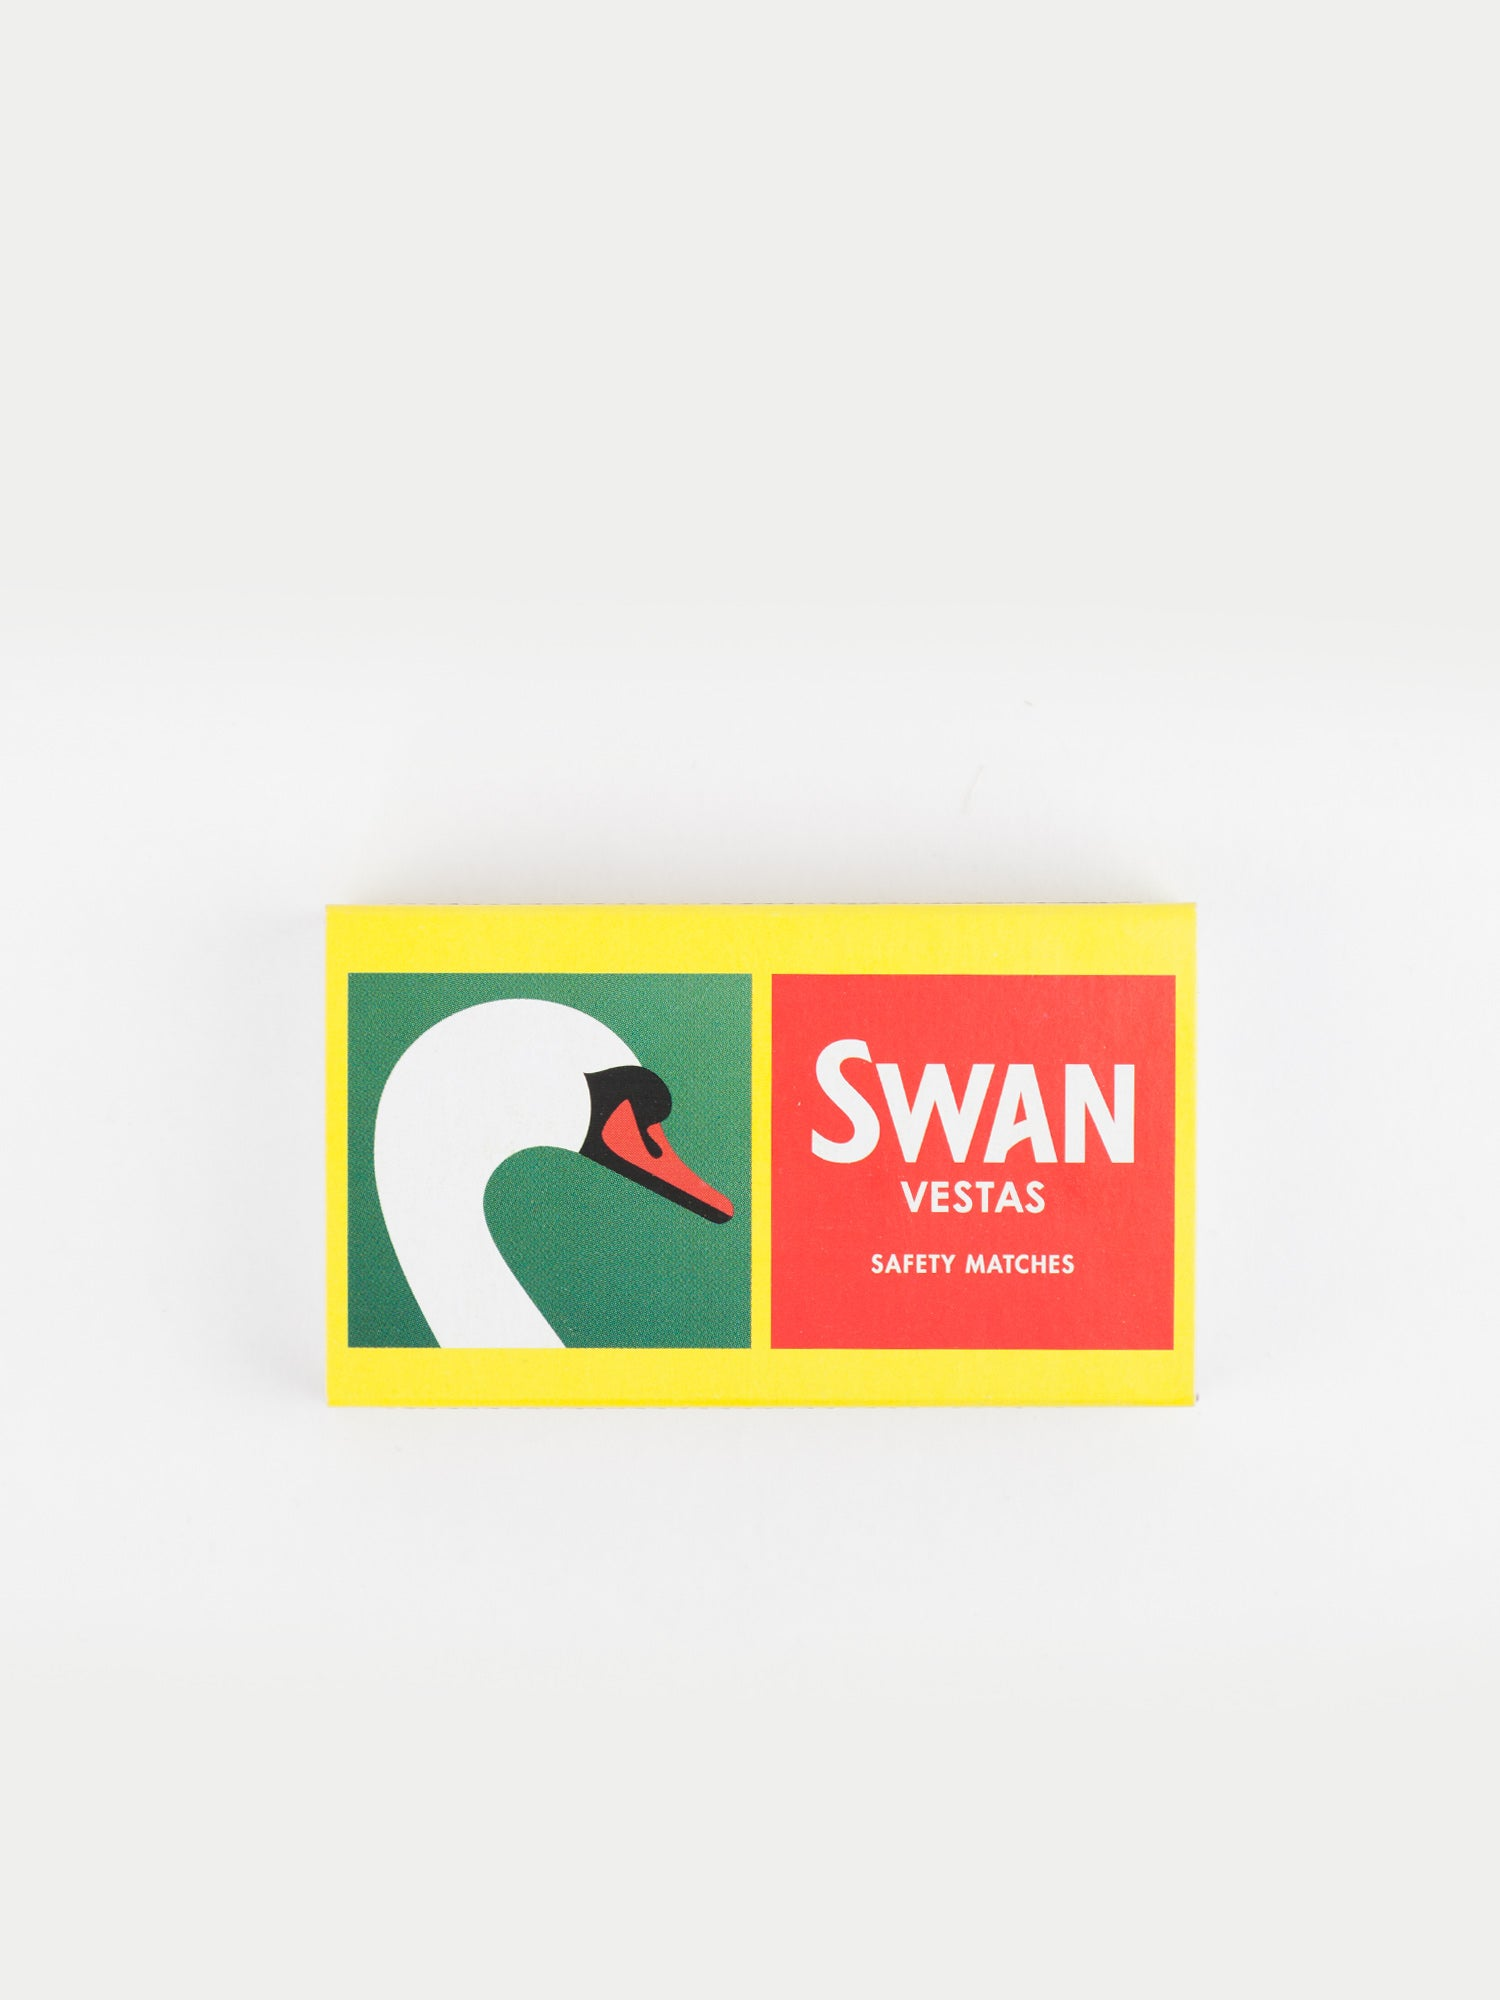 The Original Swan Vestas Matches